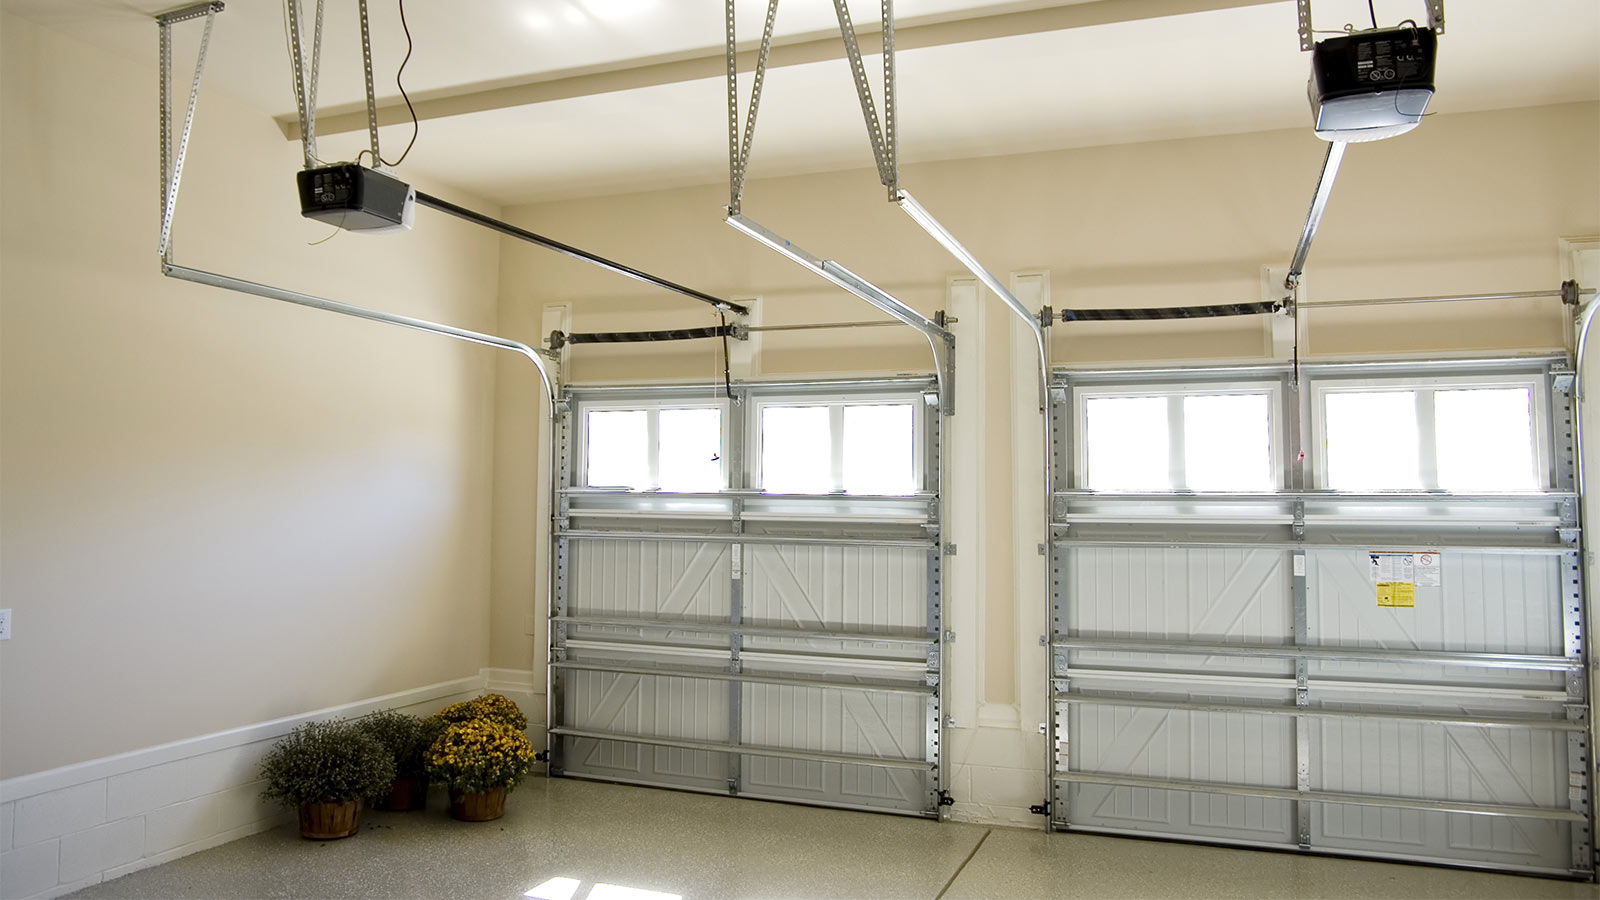 Sectional Garage Doors from Up and Over Doors Kent suppliers.